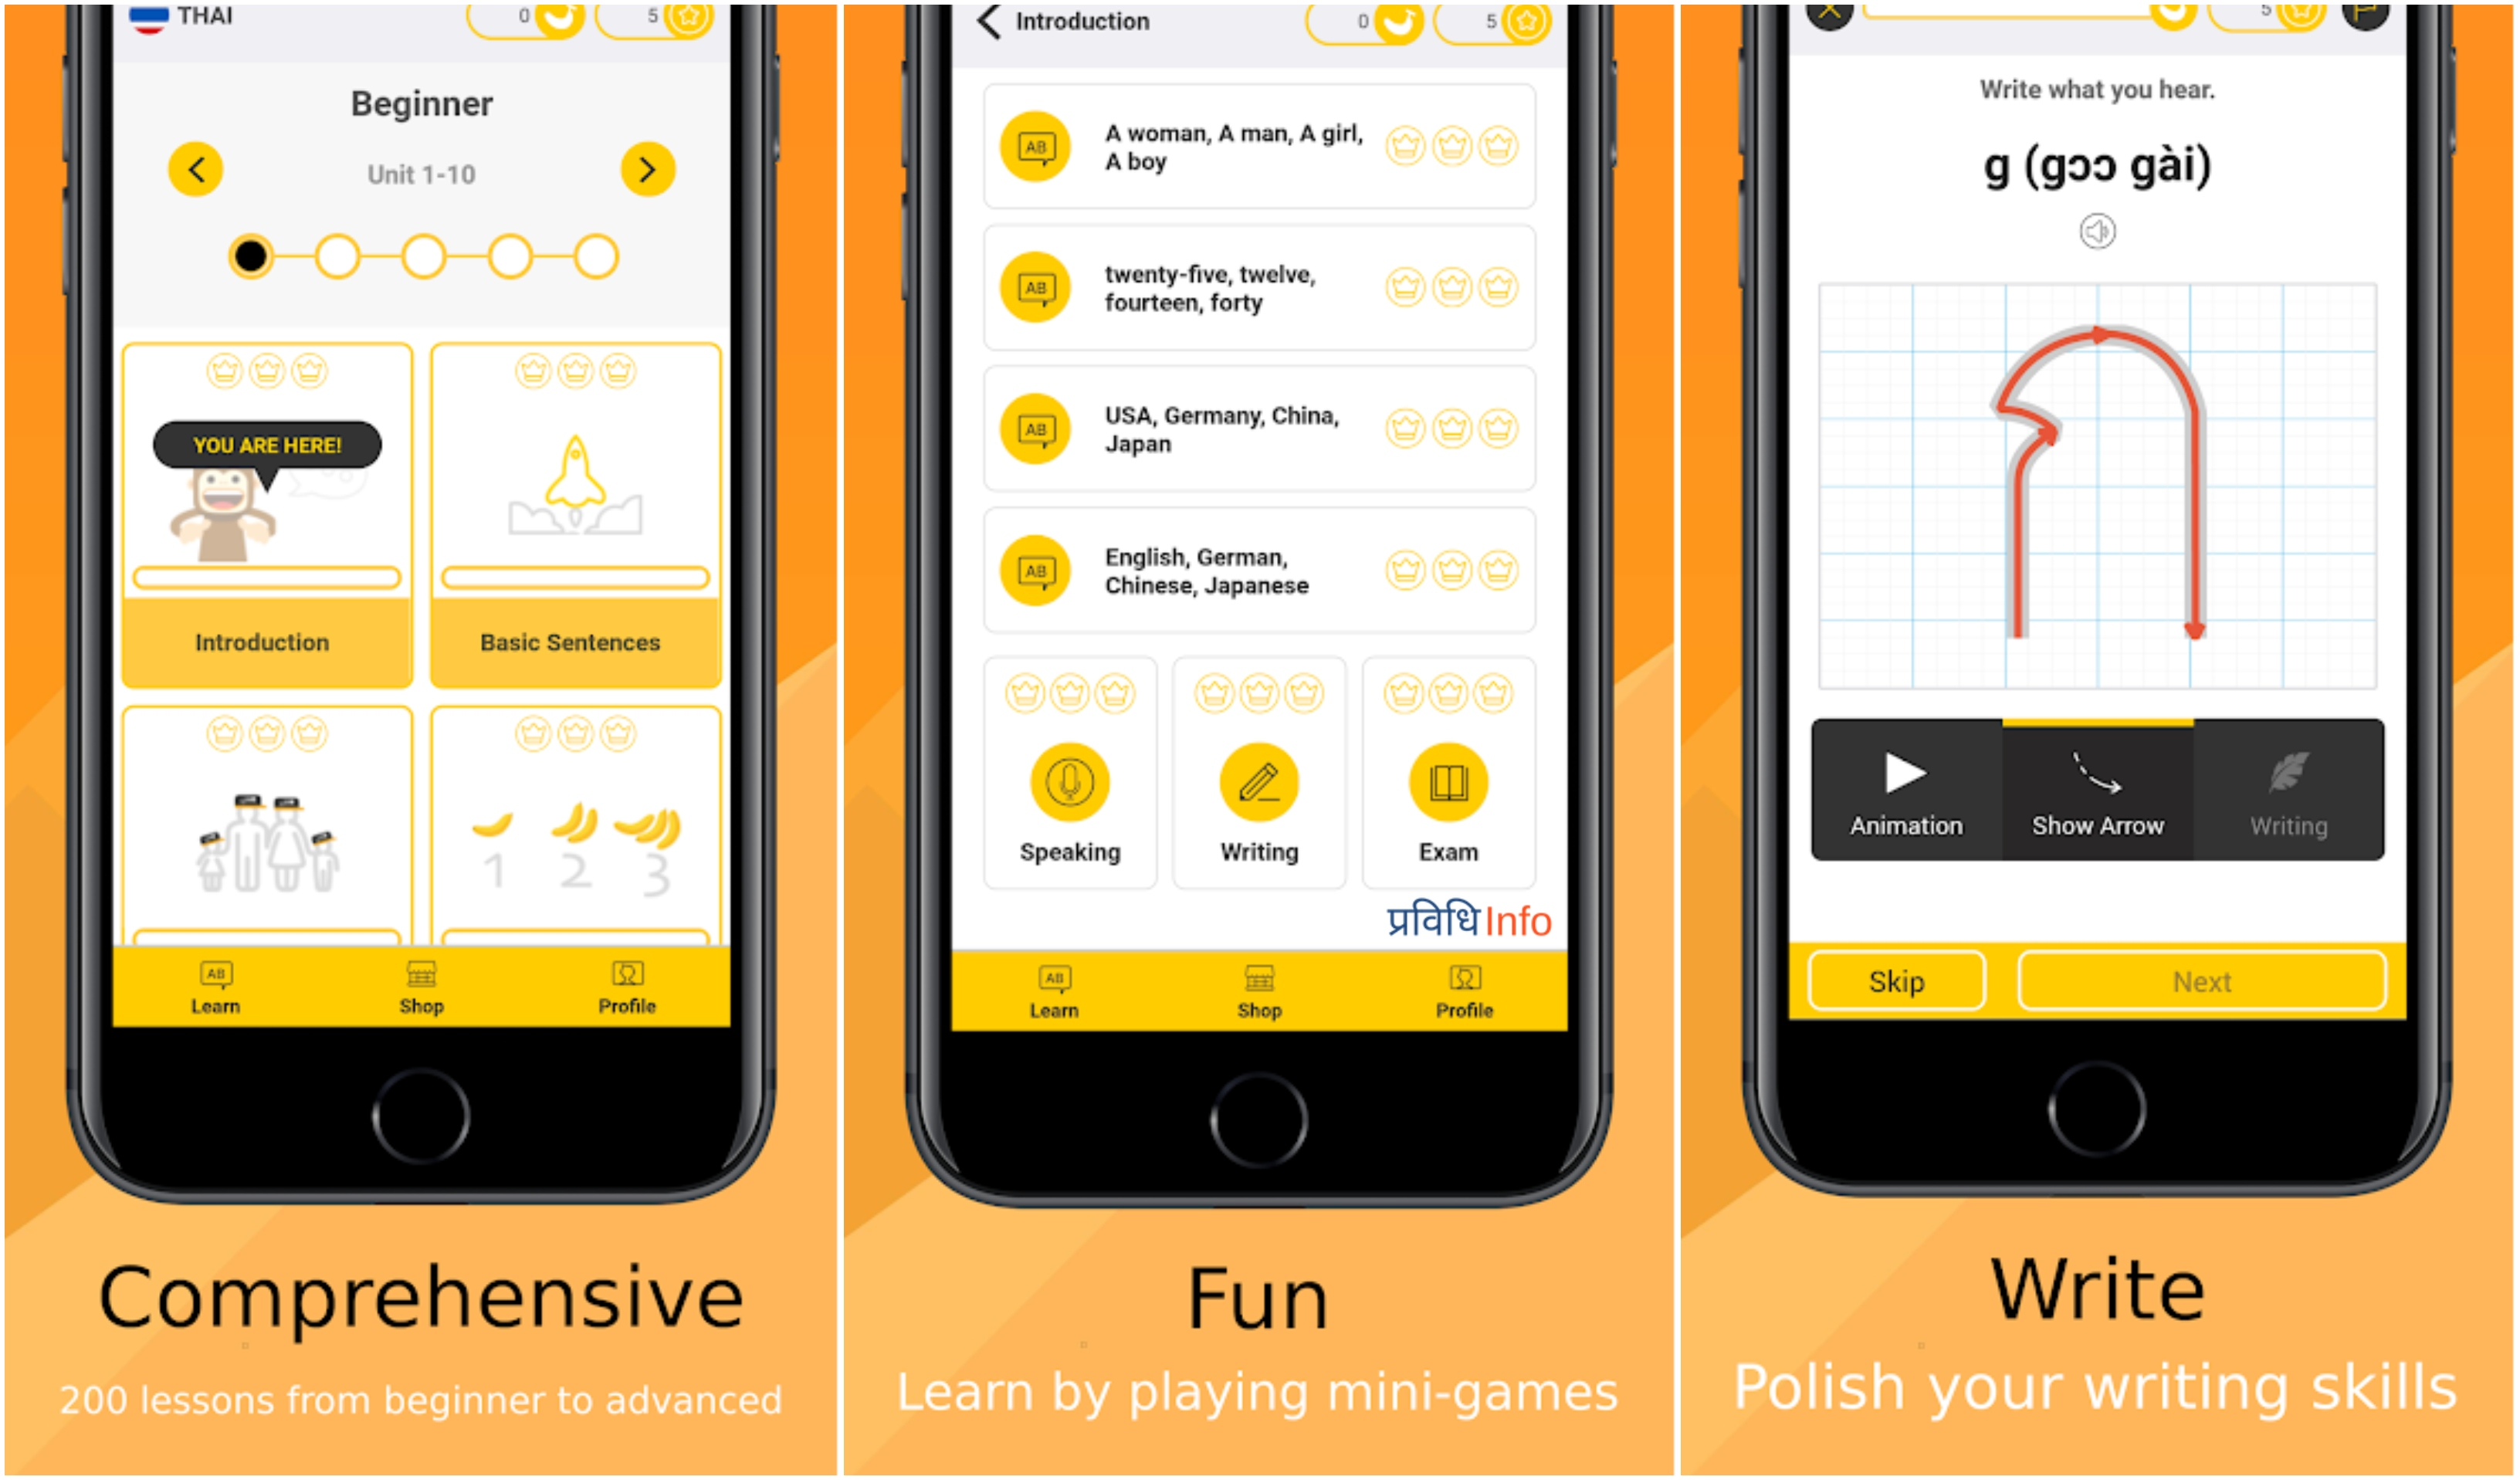 Ling Learn Language - Top 10 Unique & Best Free Android Apps – July 2019